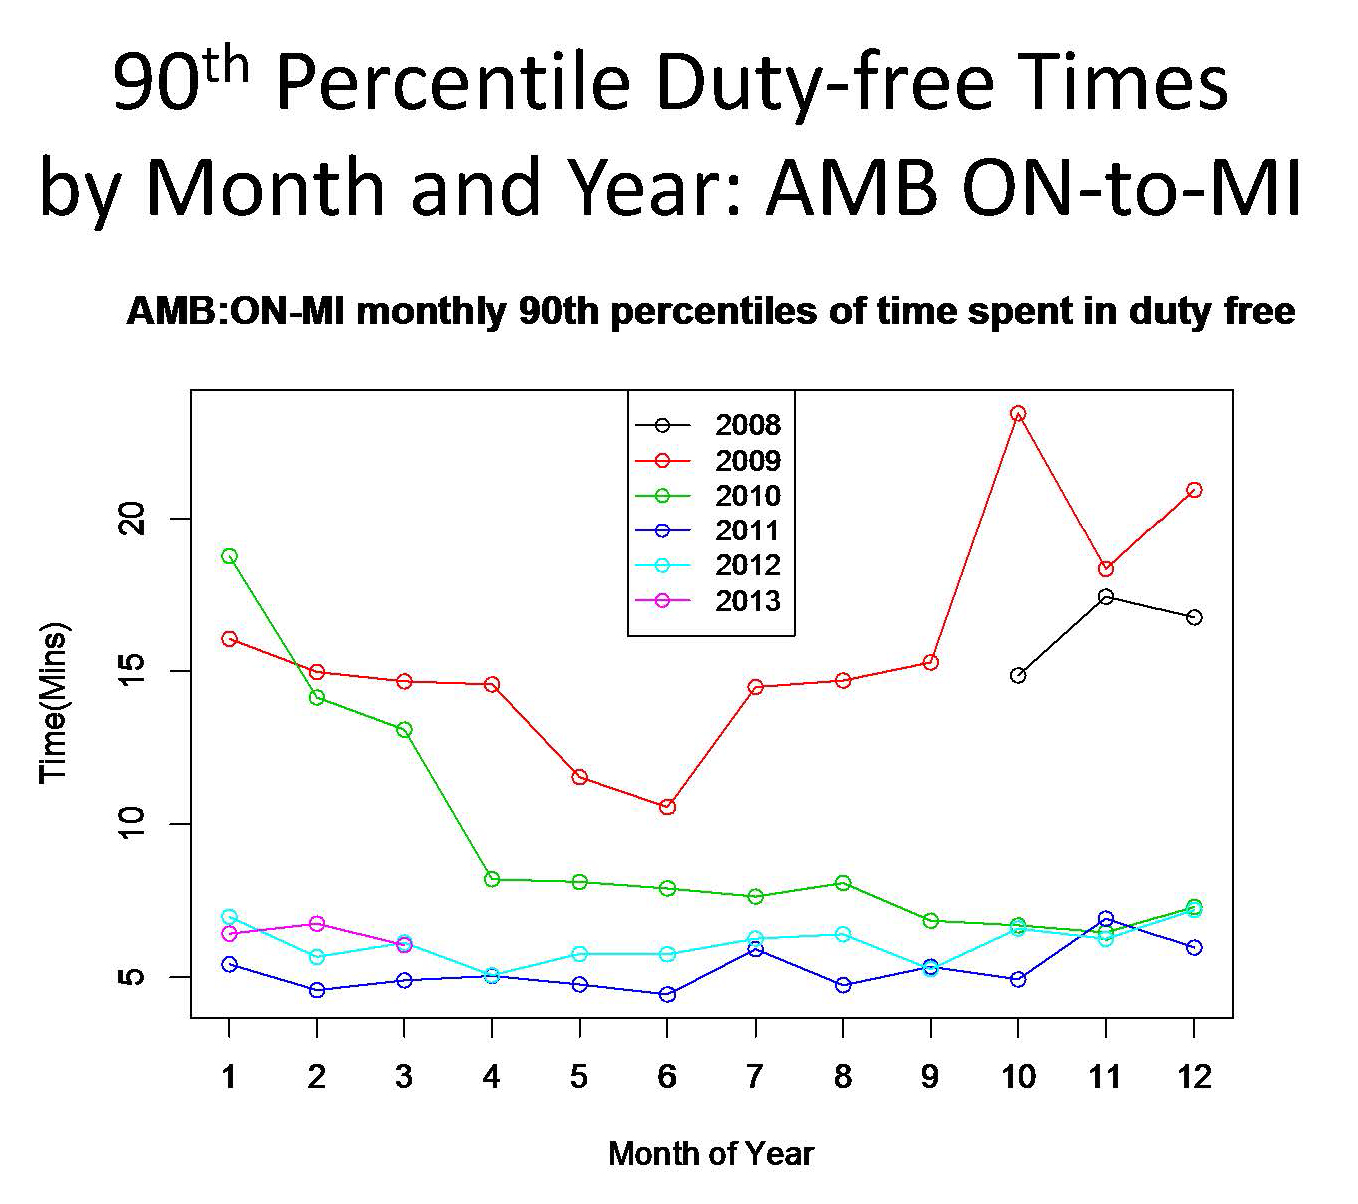 Chart of 90th percentile duty-free times by month and year.